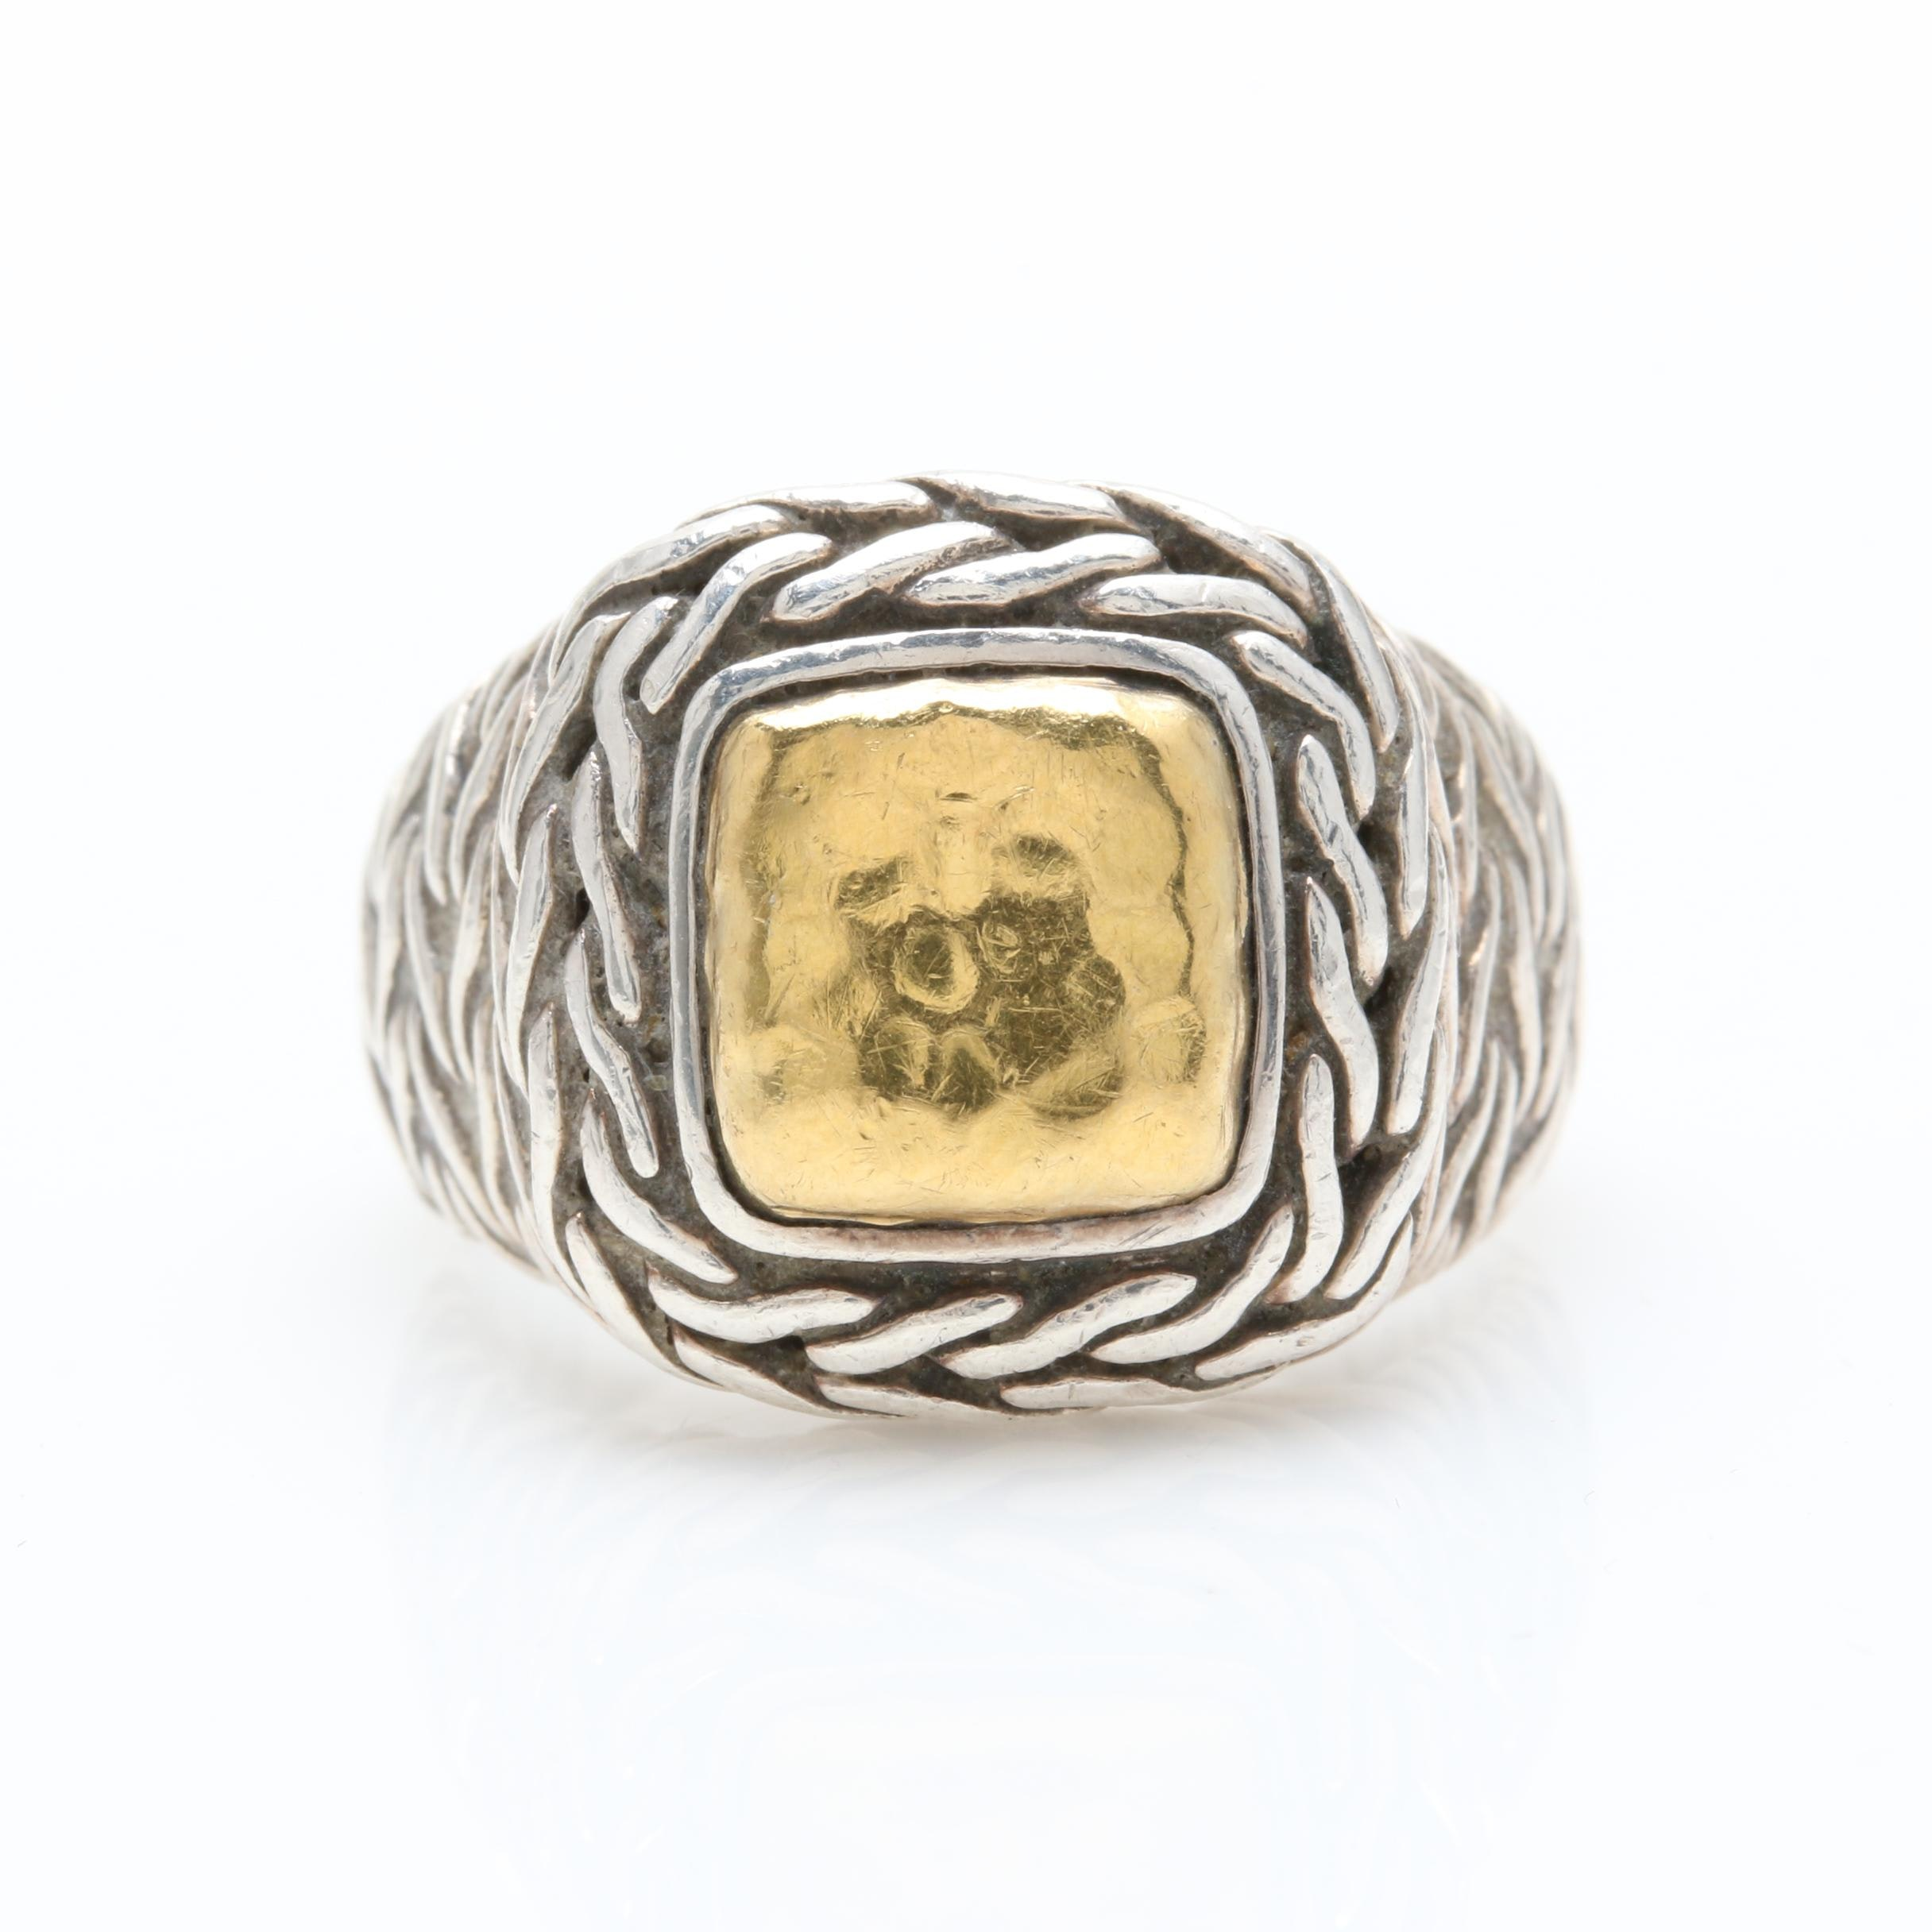 John Hardy Sterling Silver and 22K Yellow Gold Ring